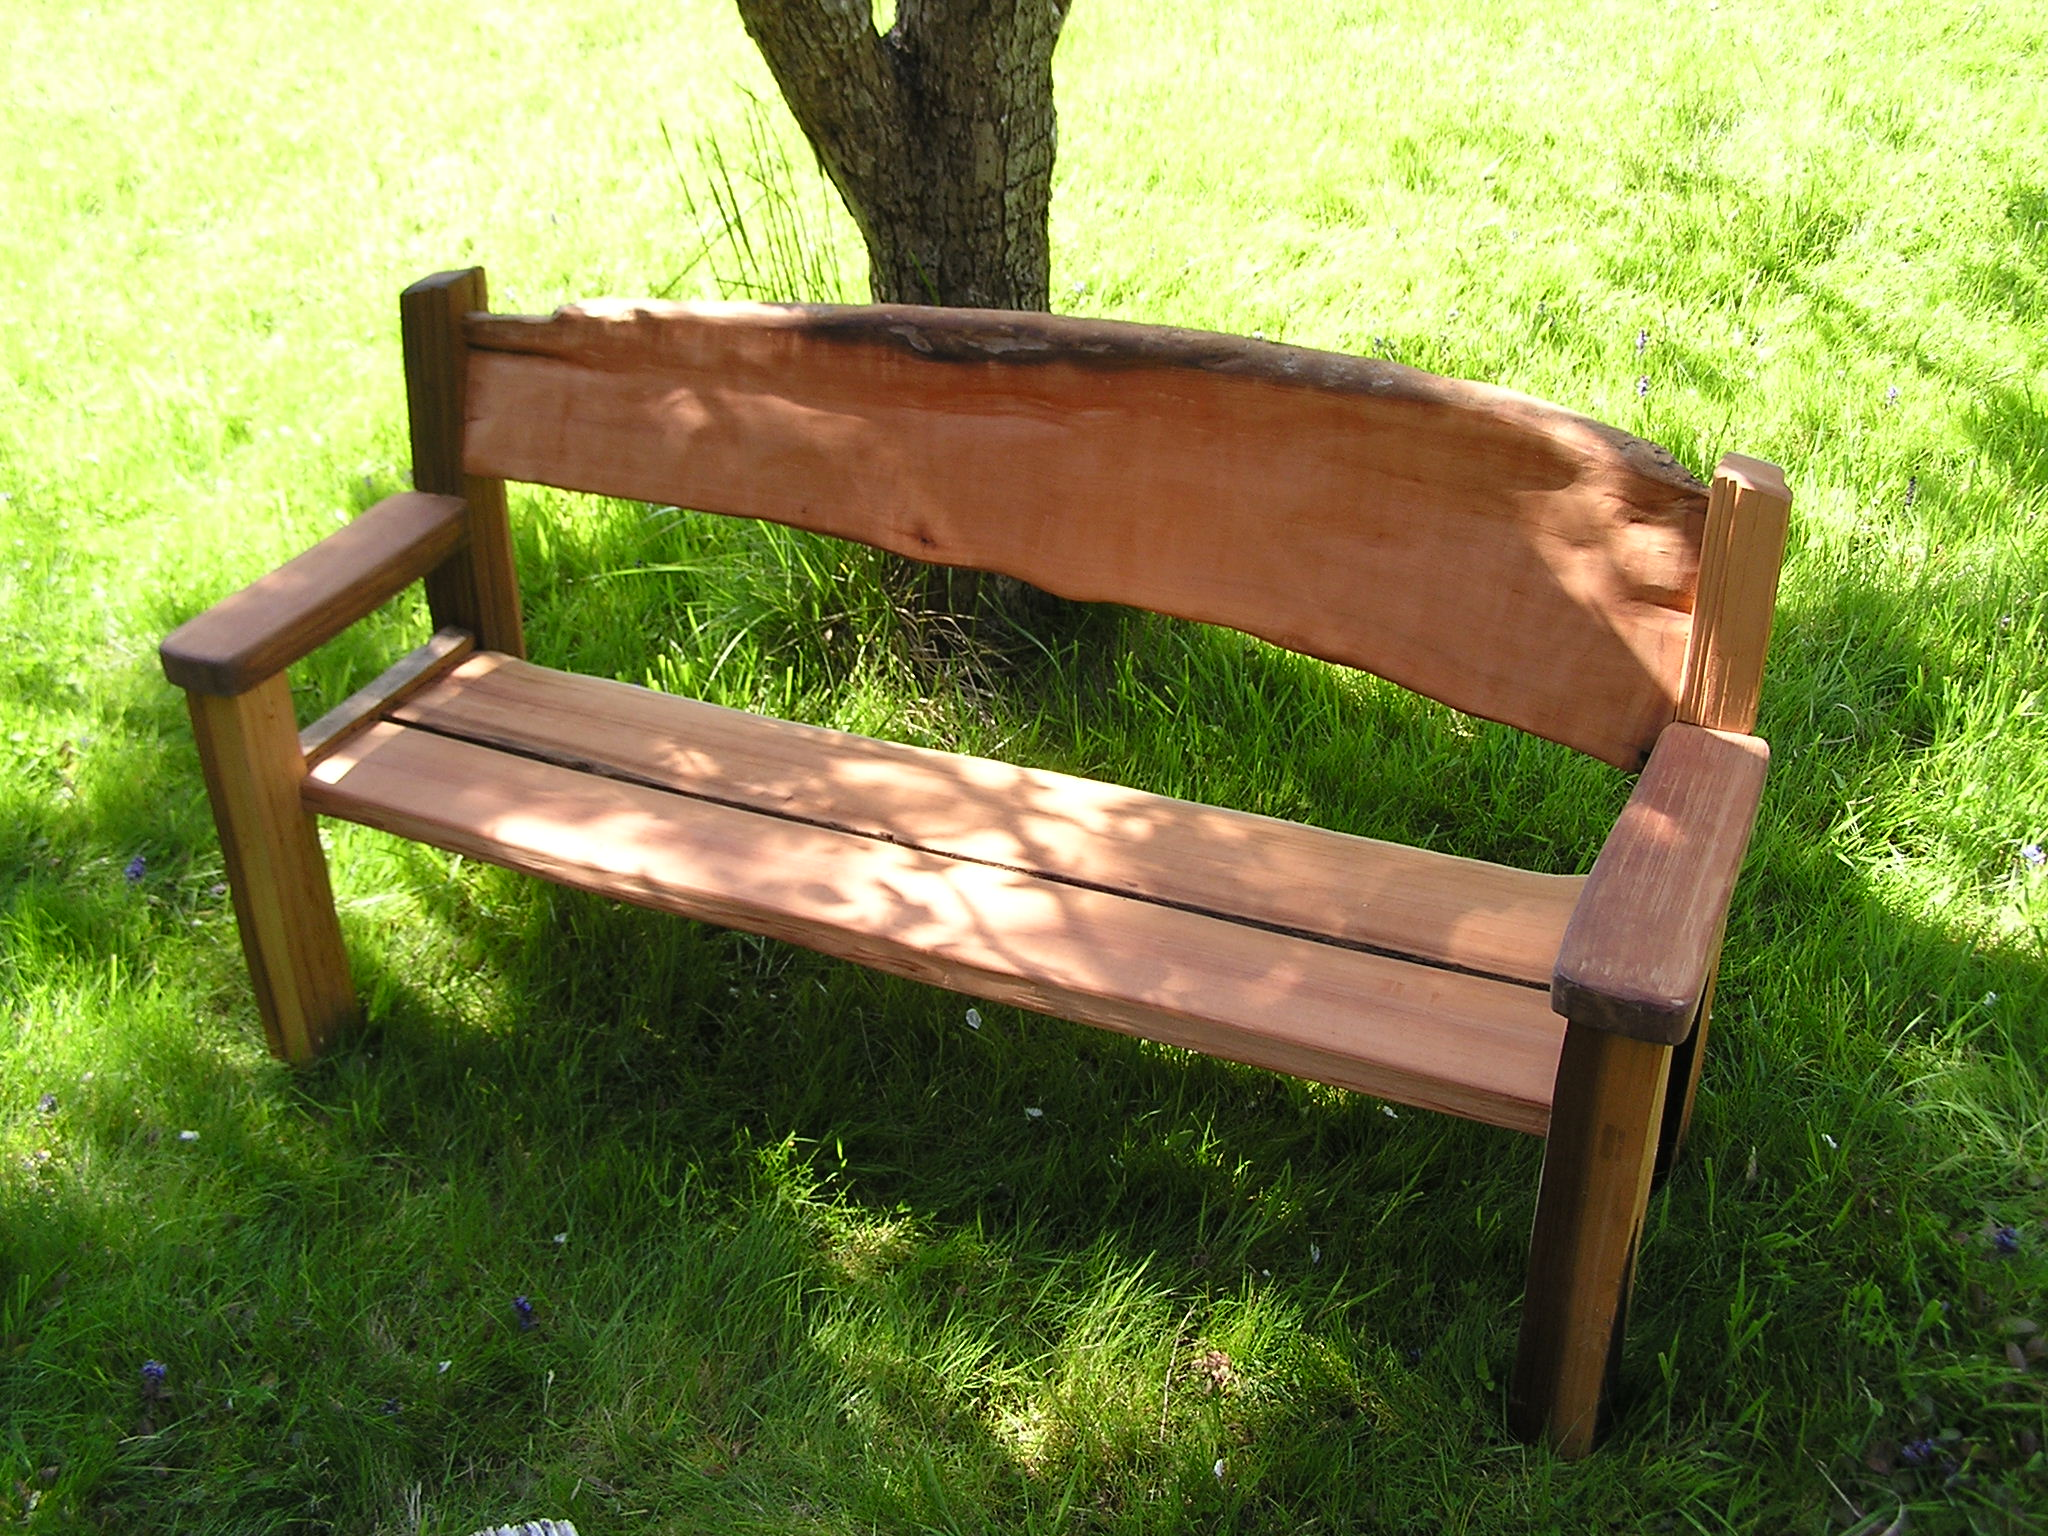 of benches bench wood here love are made artnewvo driftwood i some the